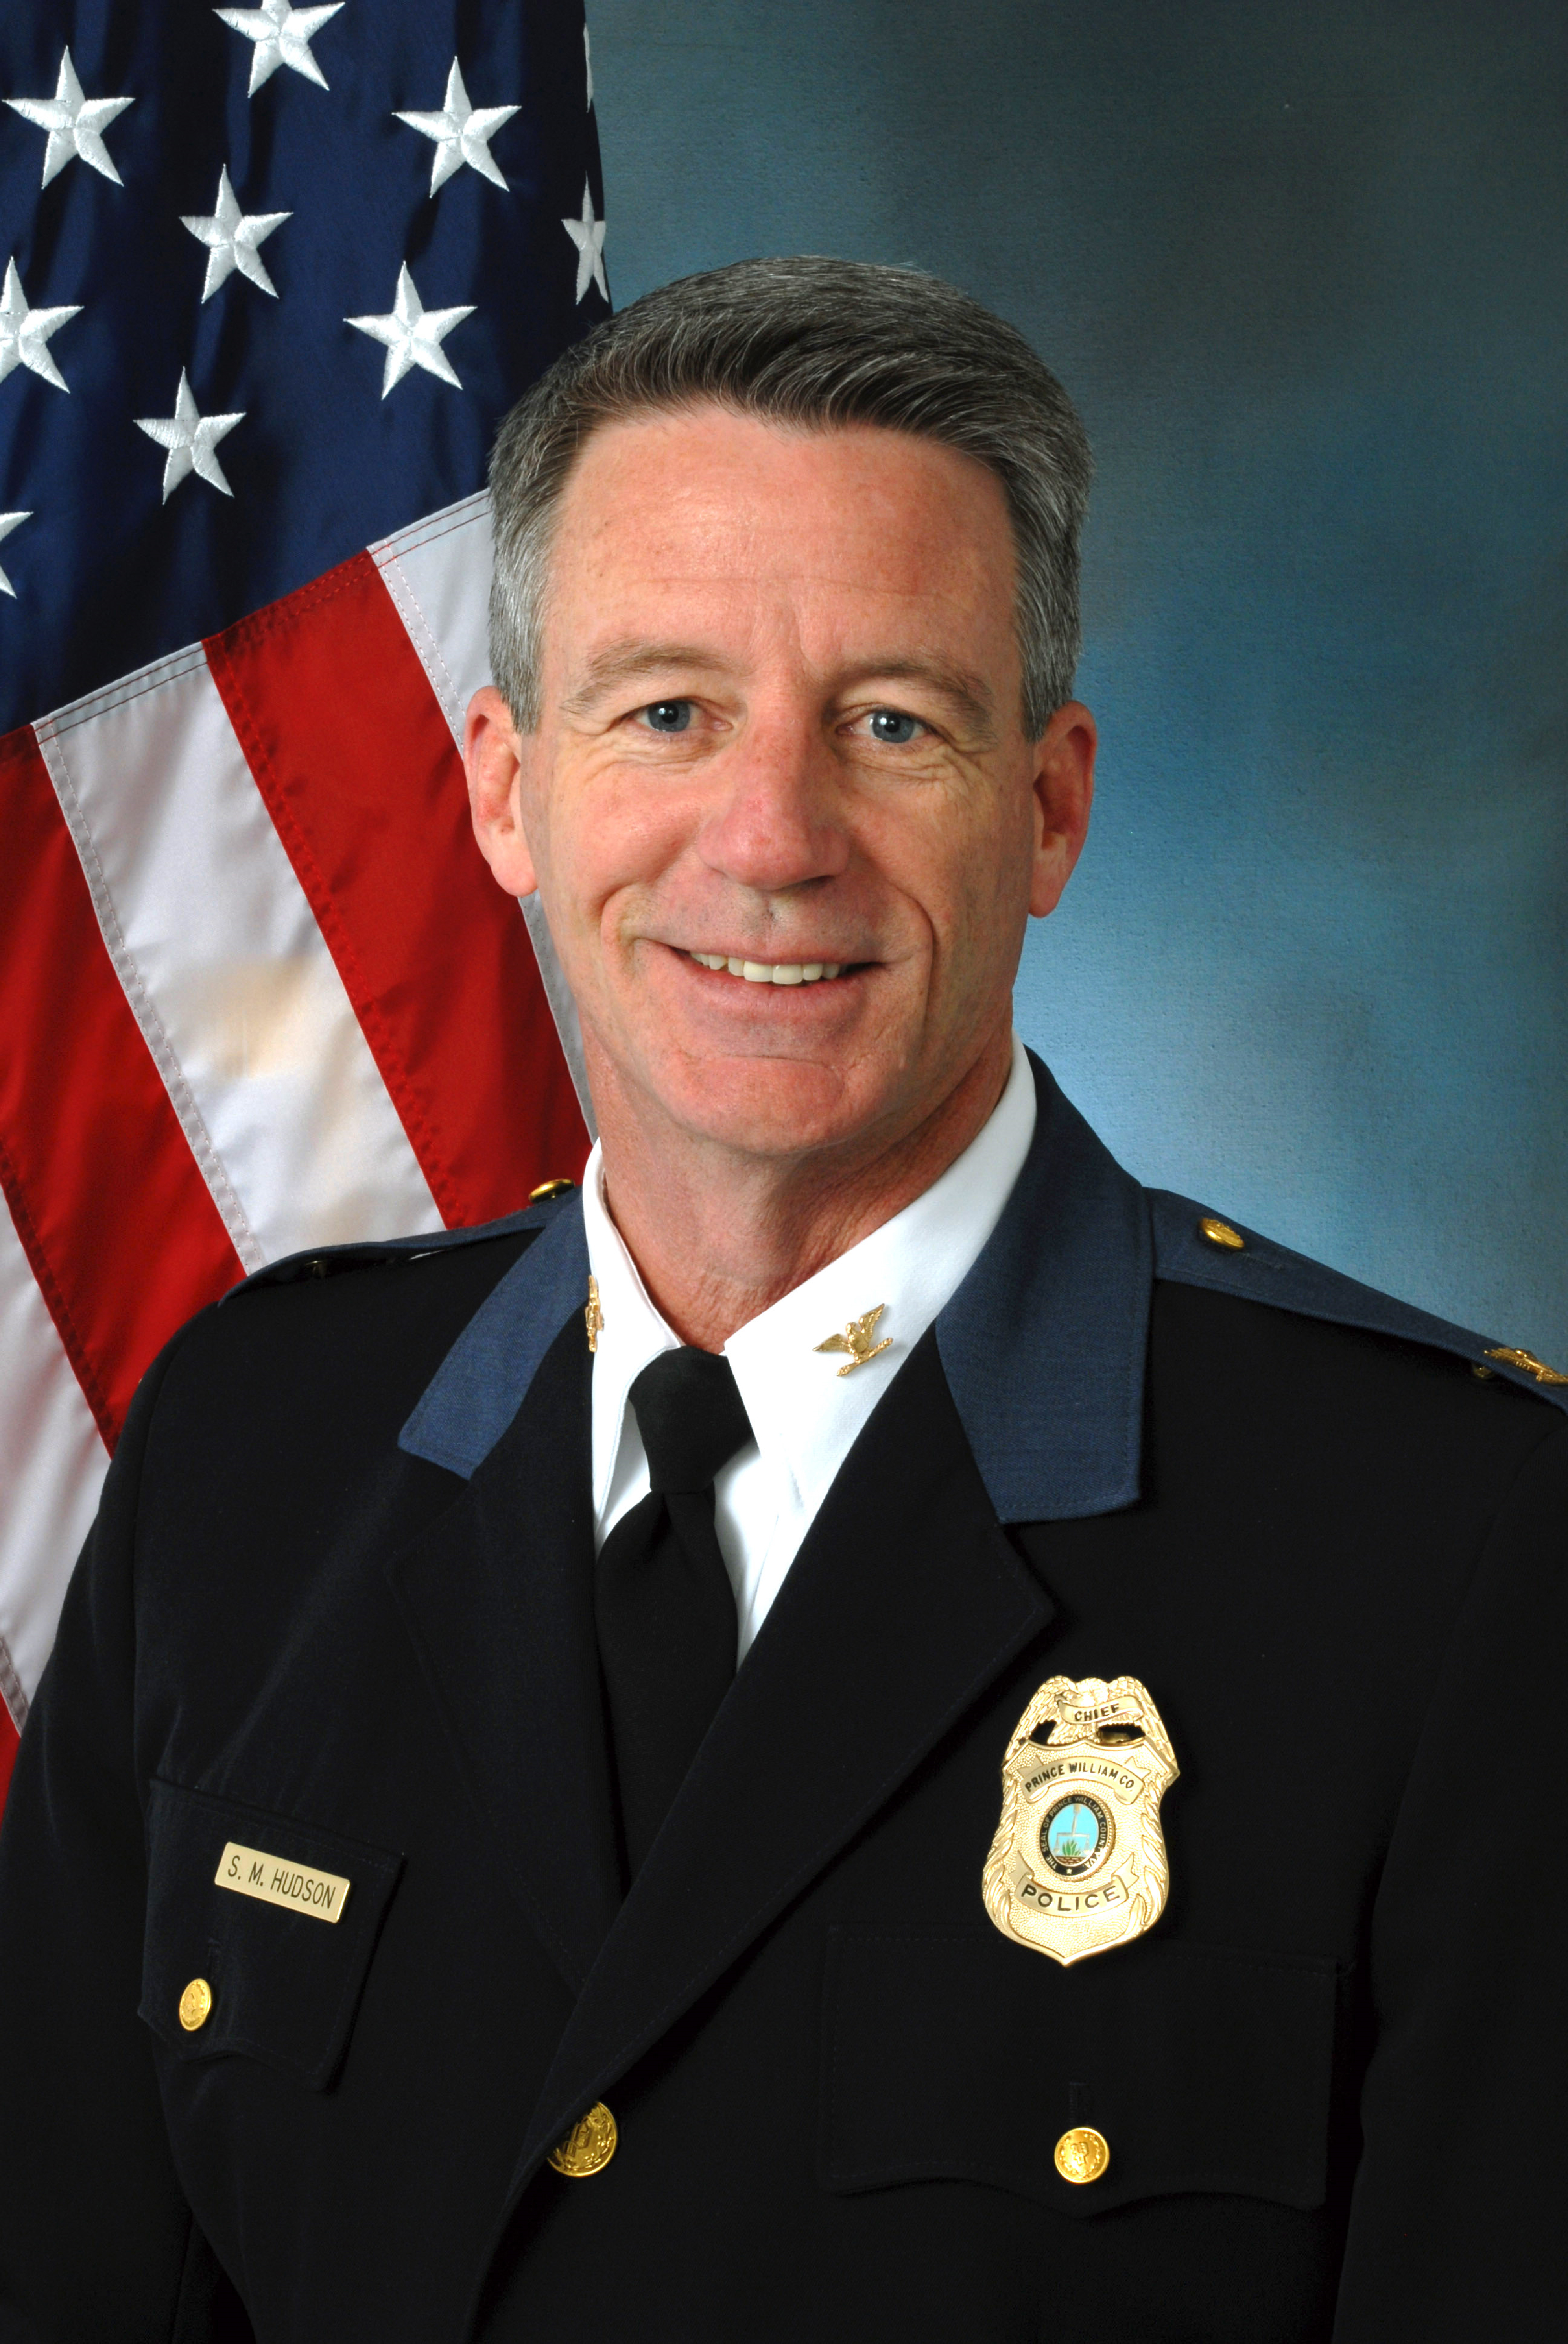 Prince William police chief stepping down